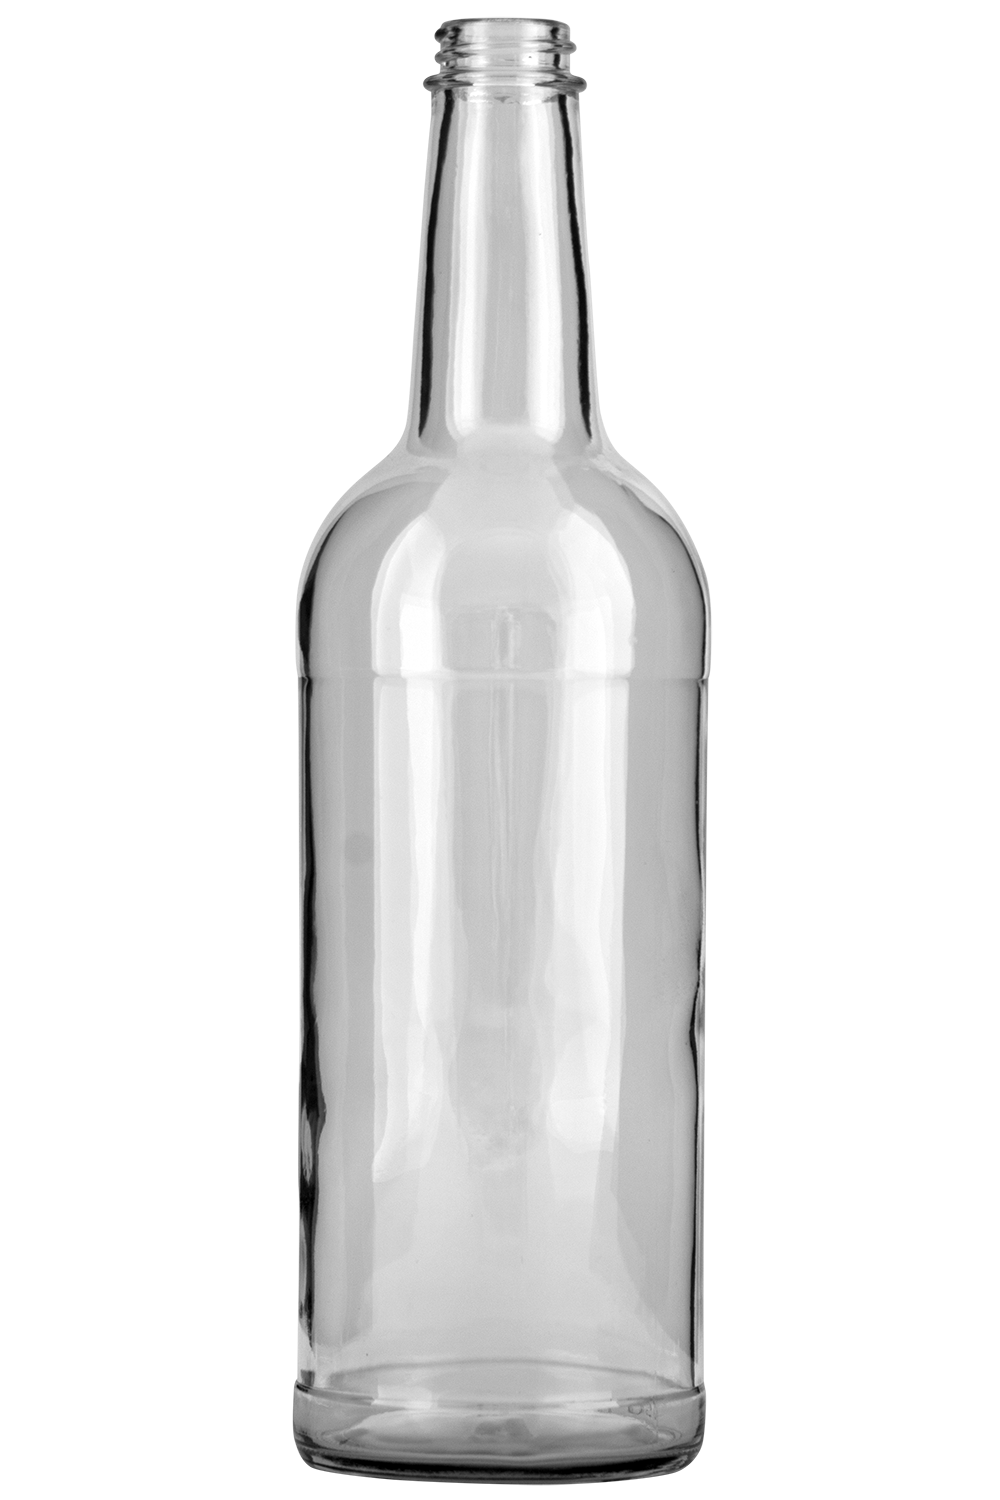 Br ml aac wine. Liquor bottle png picture freeuse